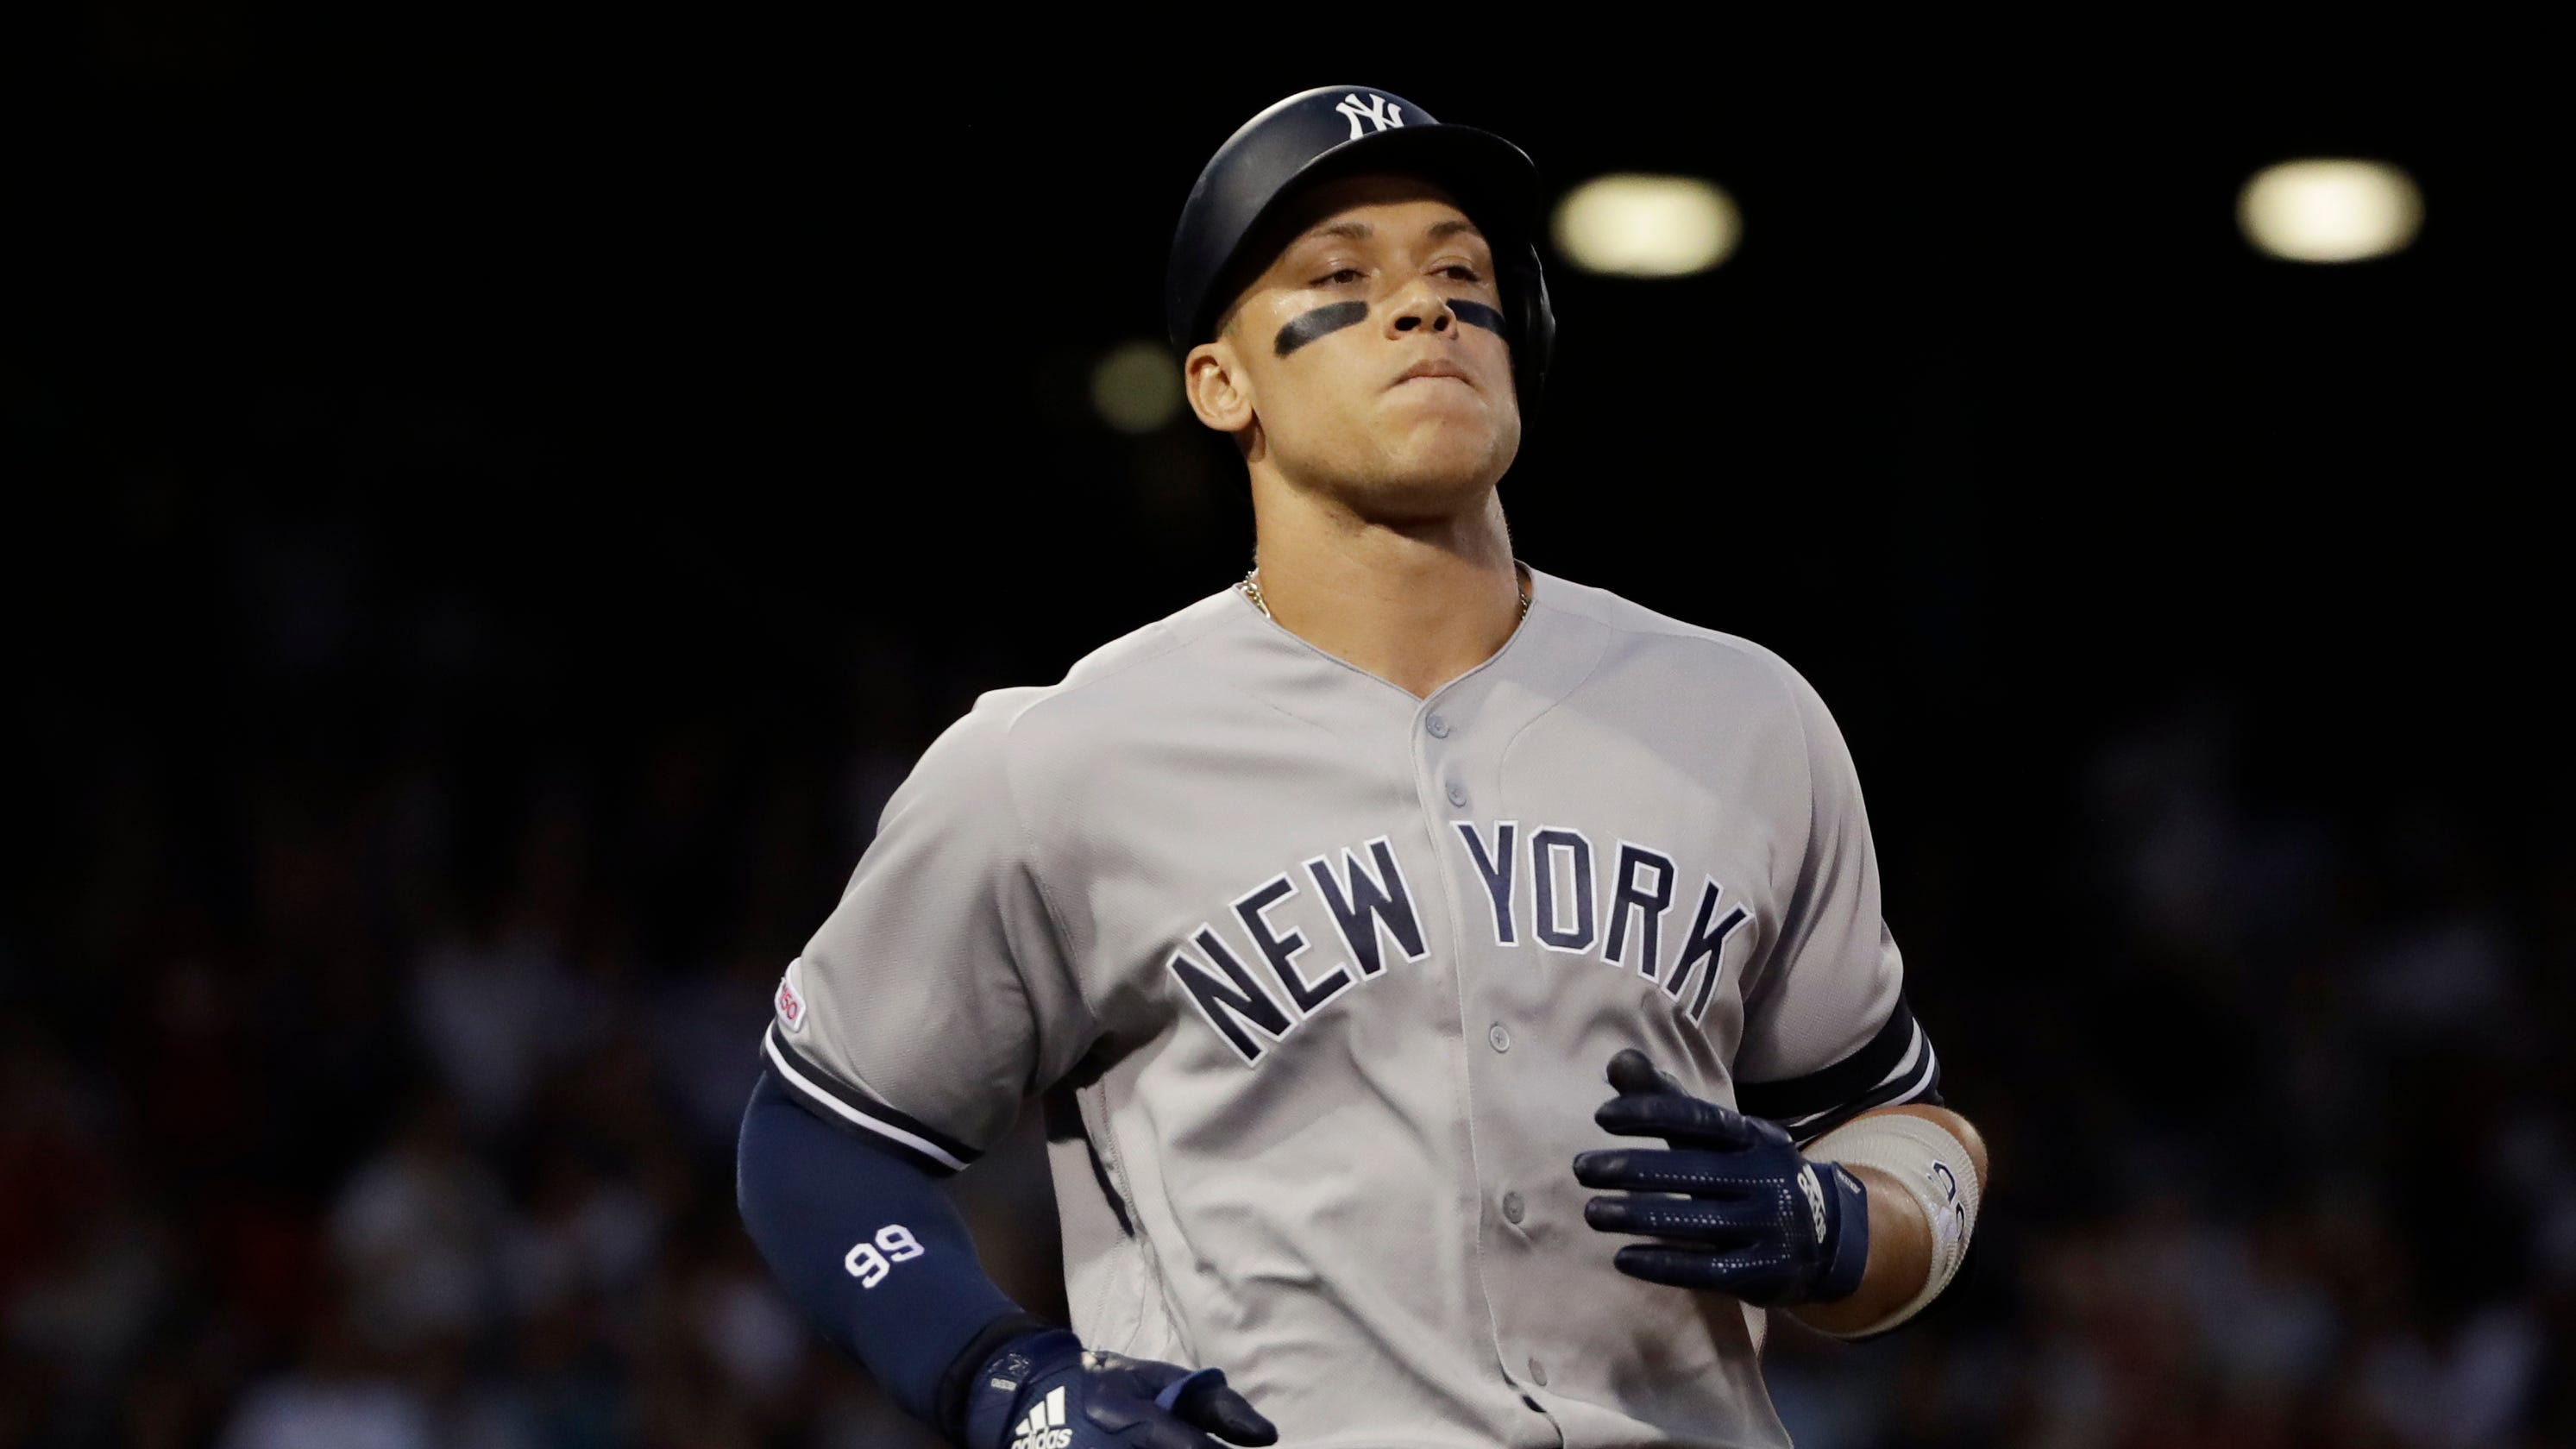 New York Yankees: Five things they must do to get revenge on